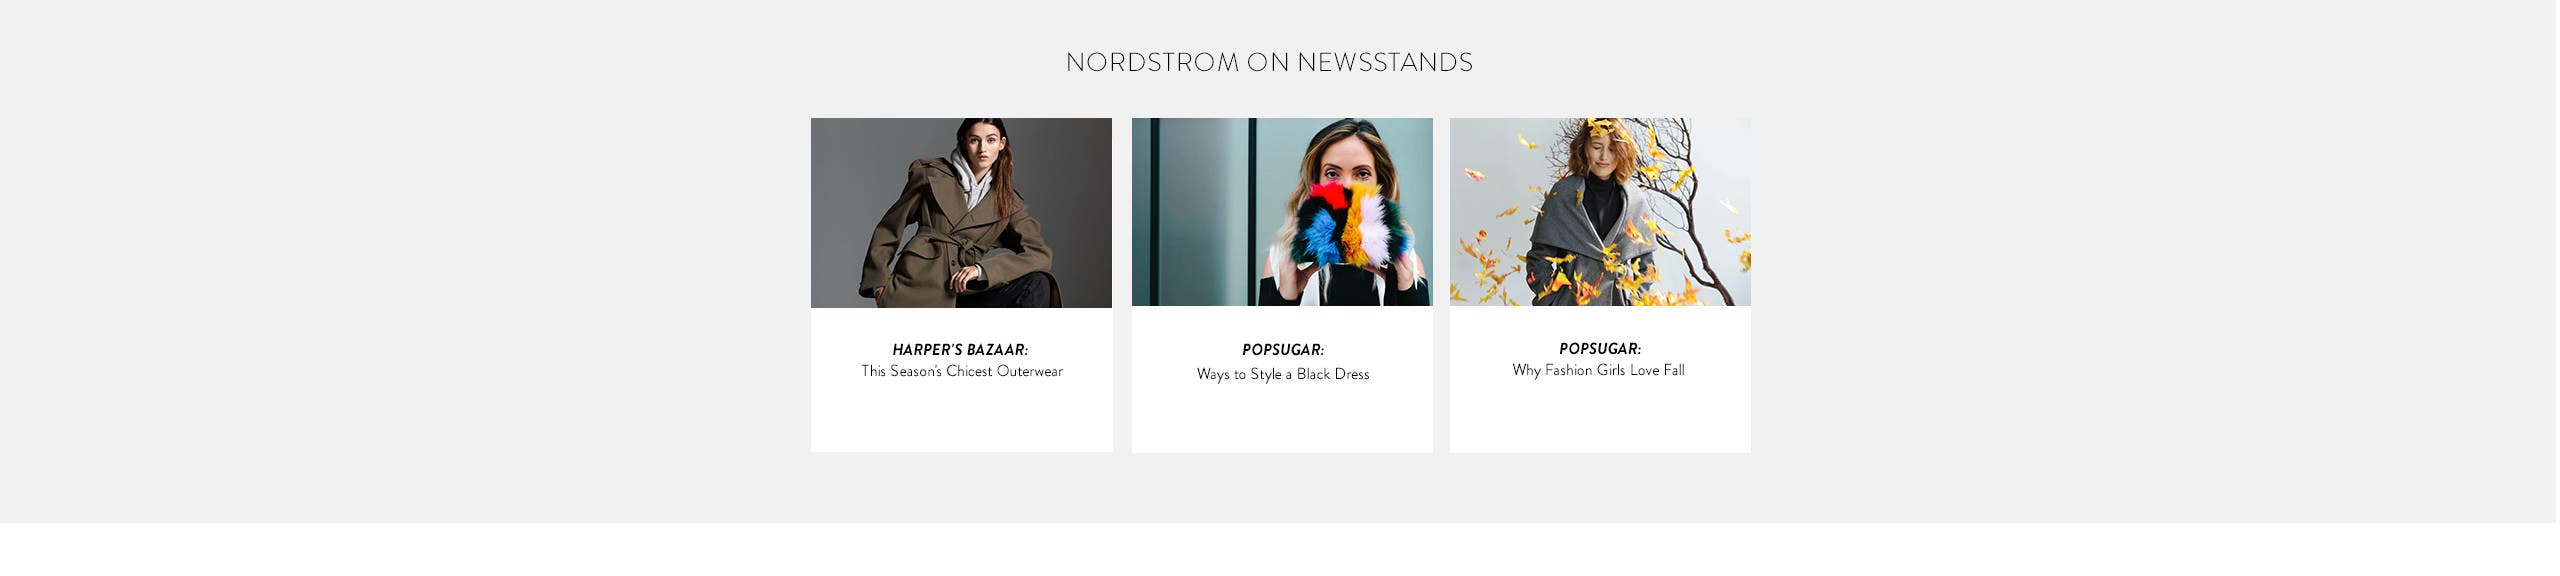 Nordstrom on newsstands. Harper's BAZAAR: this season's chicest outerwear. POPSUGAR: ways to style a black dress. POPSUGAR: why fashion girls love fall.